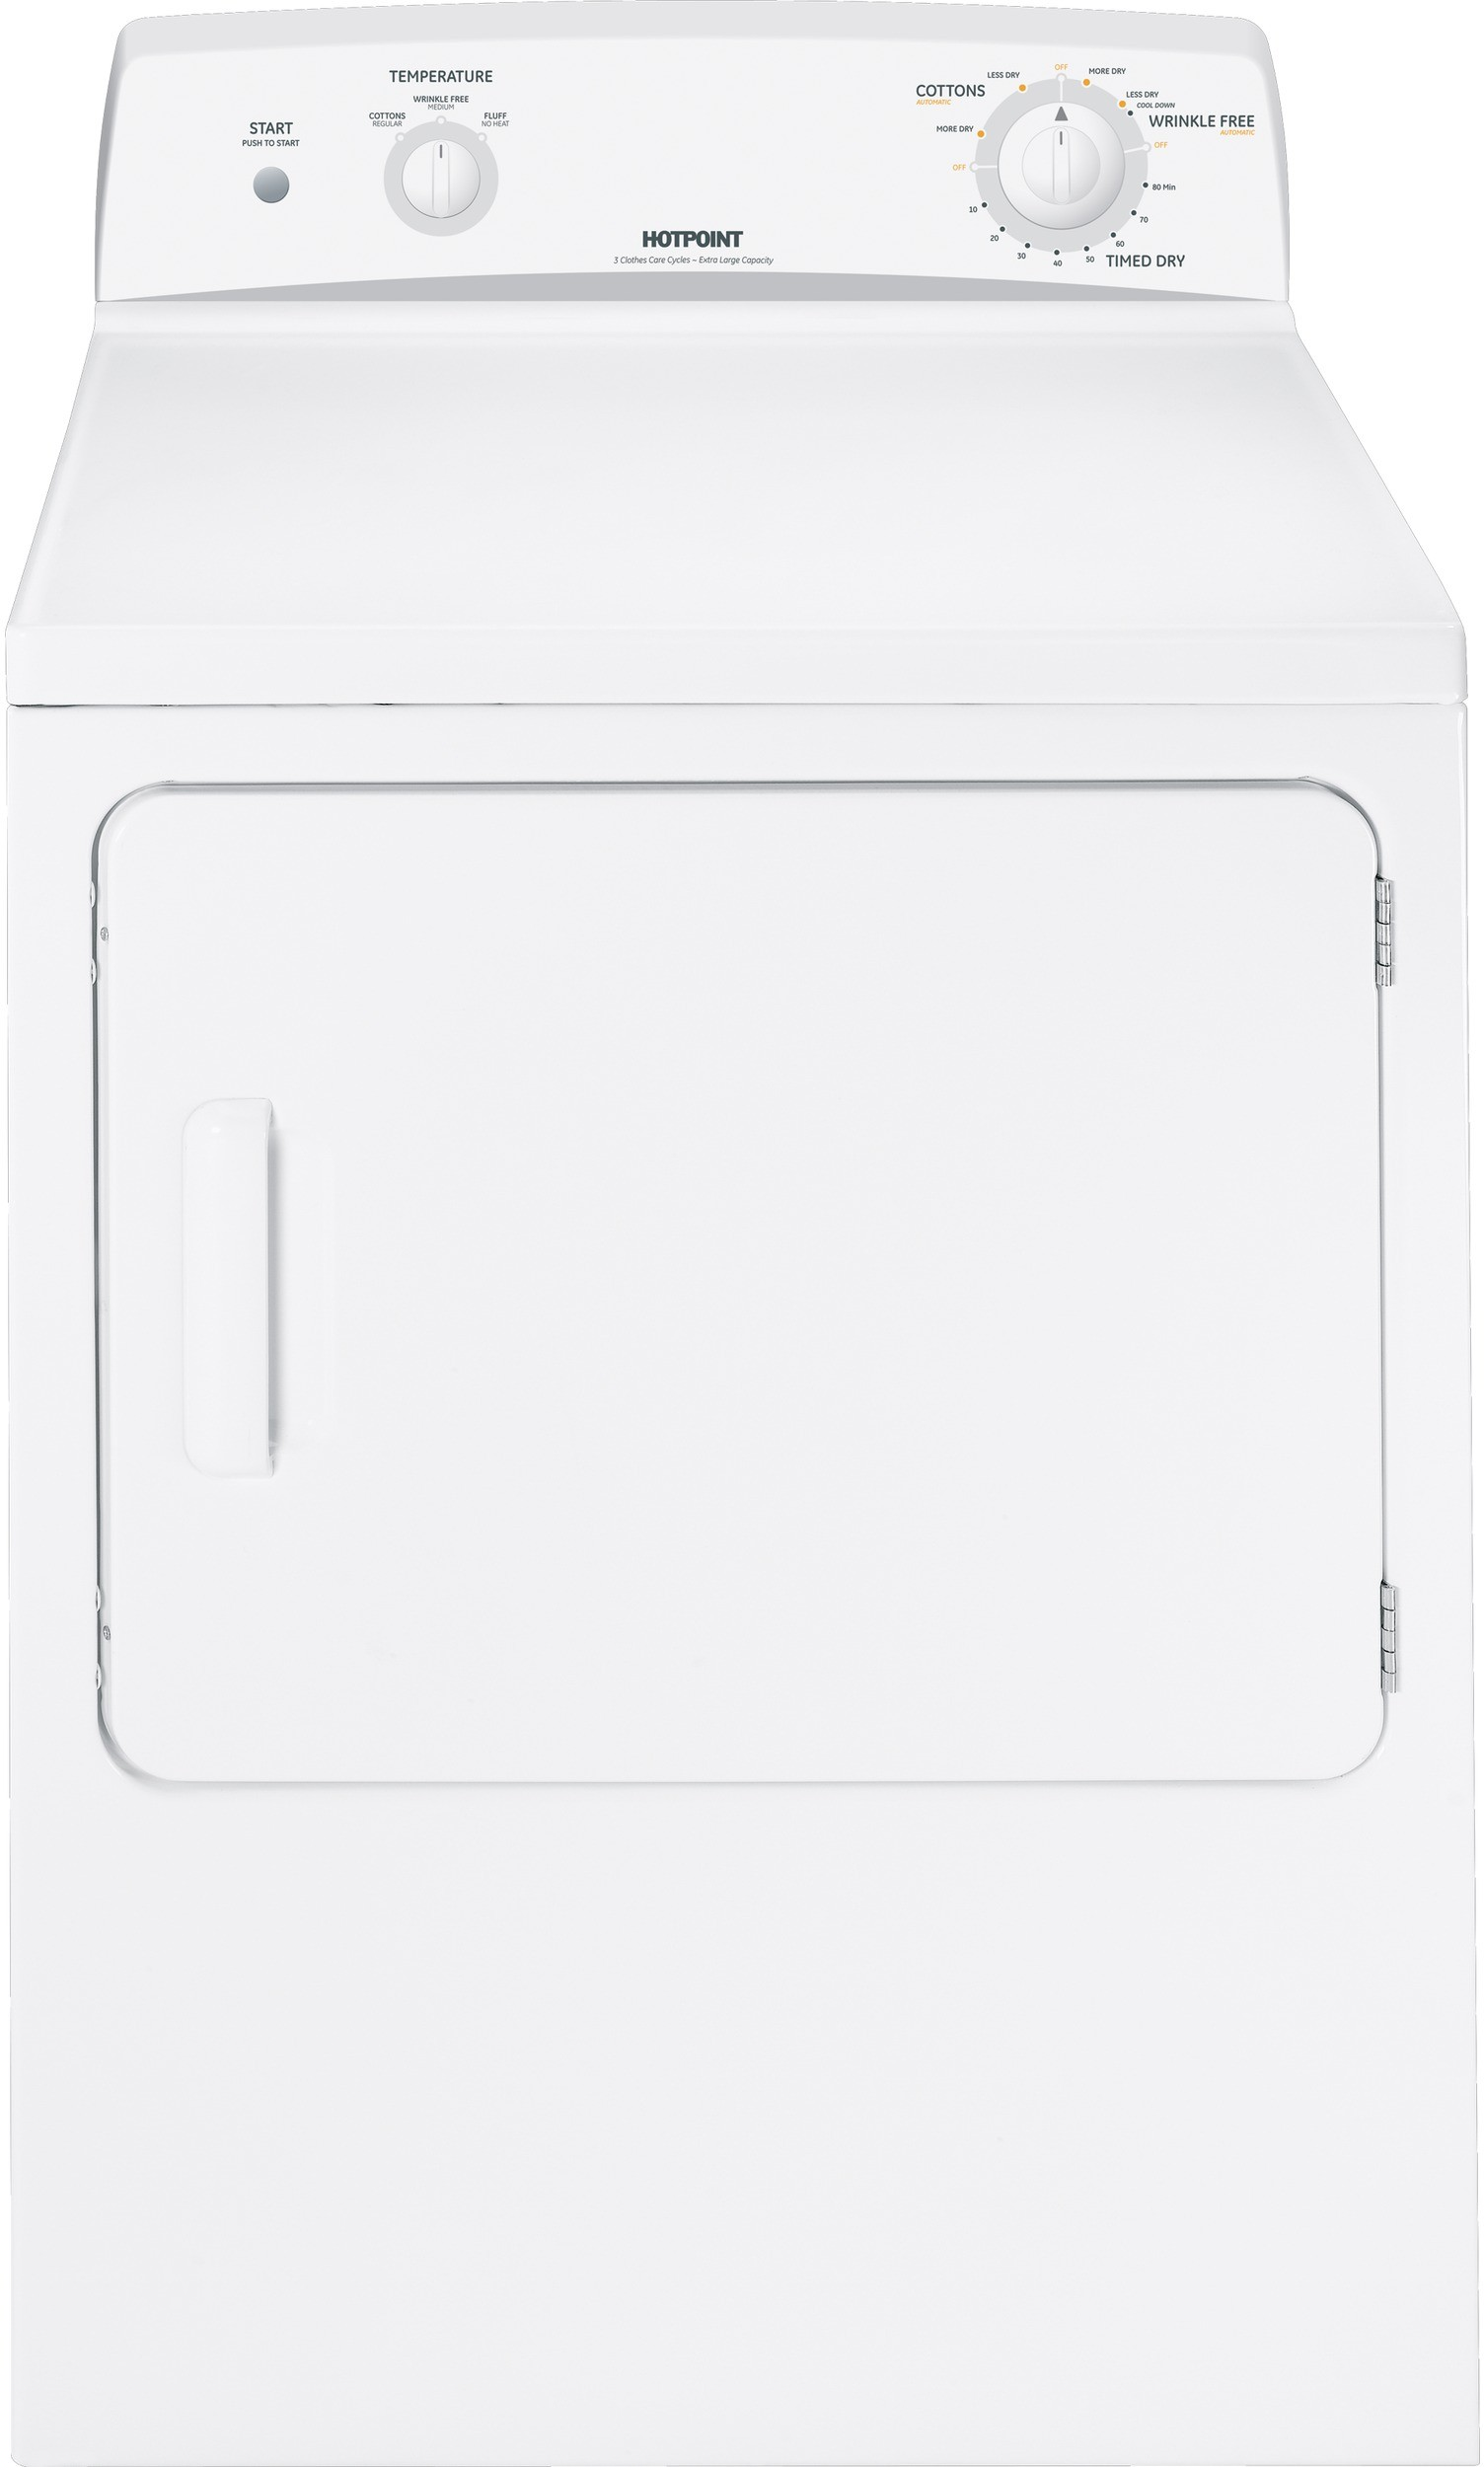 Hotpoint Htdx100emww 27 Inch Electric Dryer With 6 0 Cu Ft Capacity 3 Drying Cycles 3 Heat